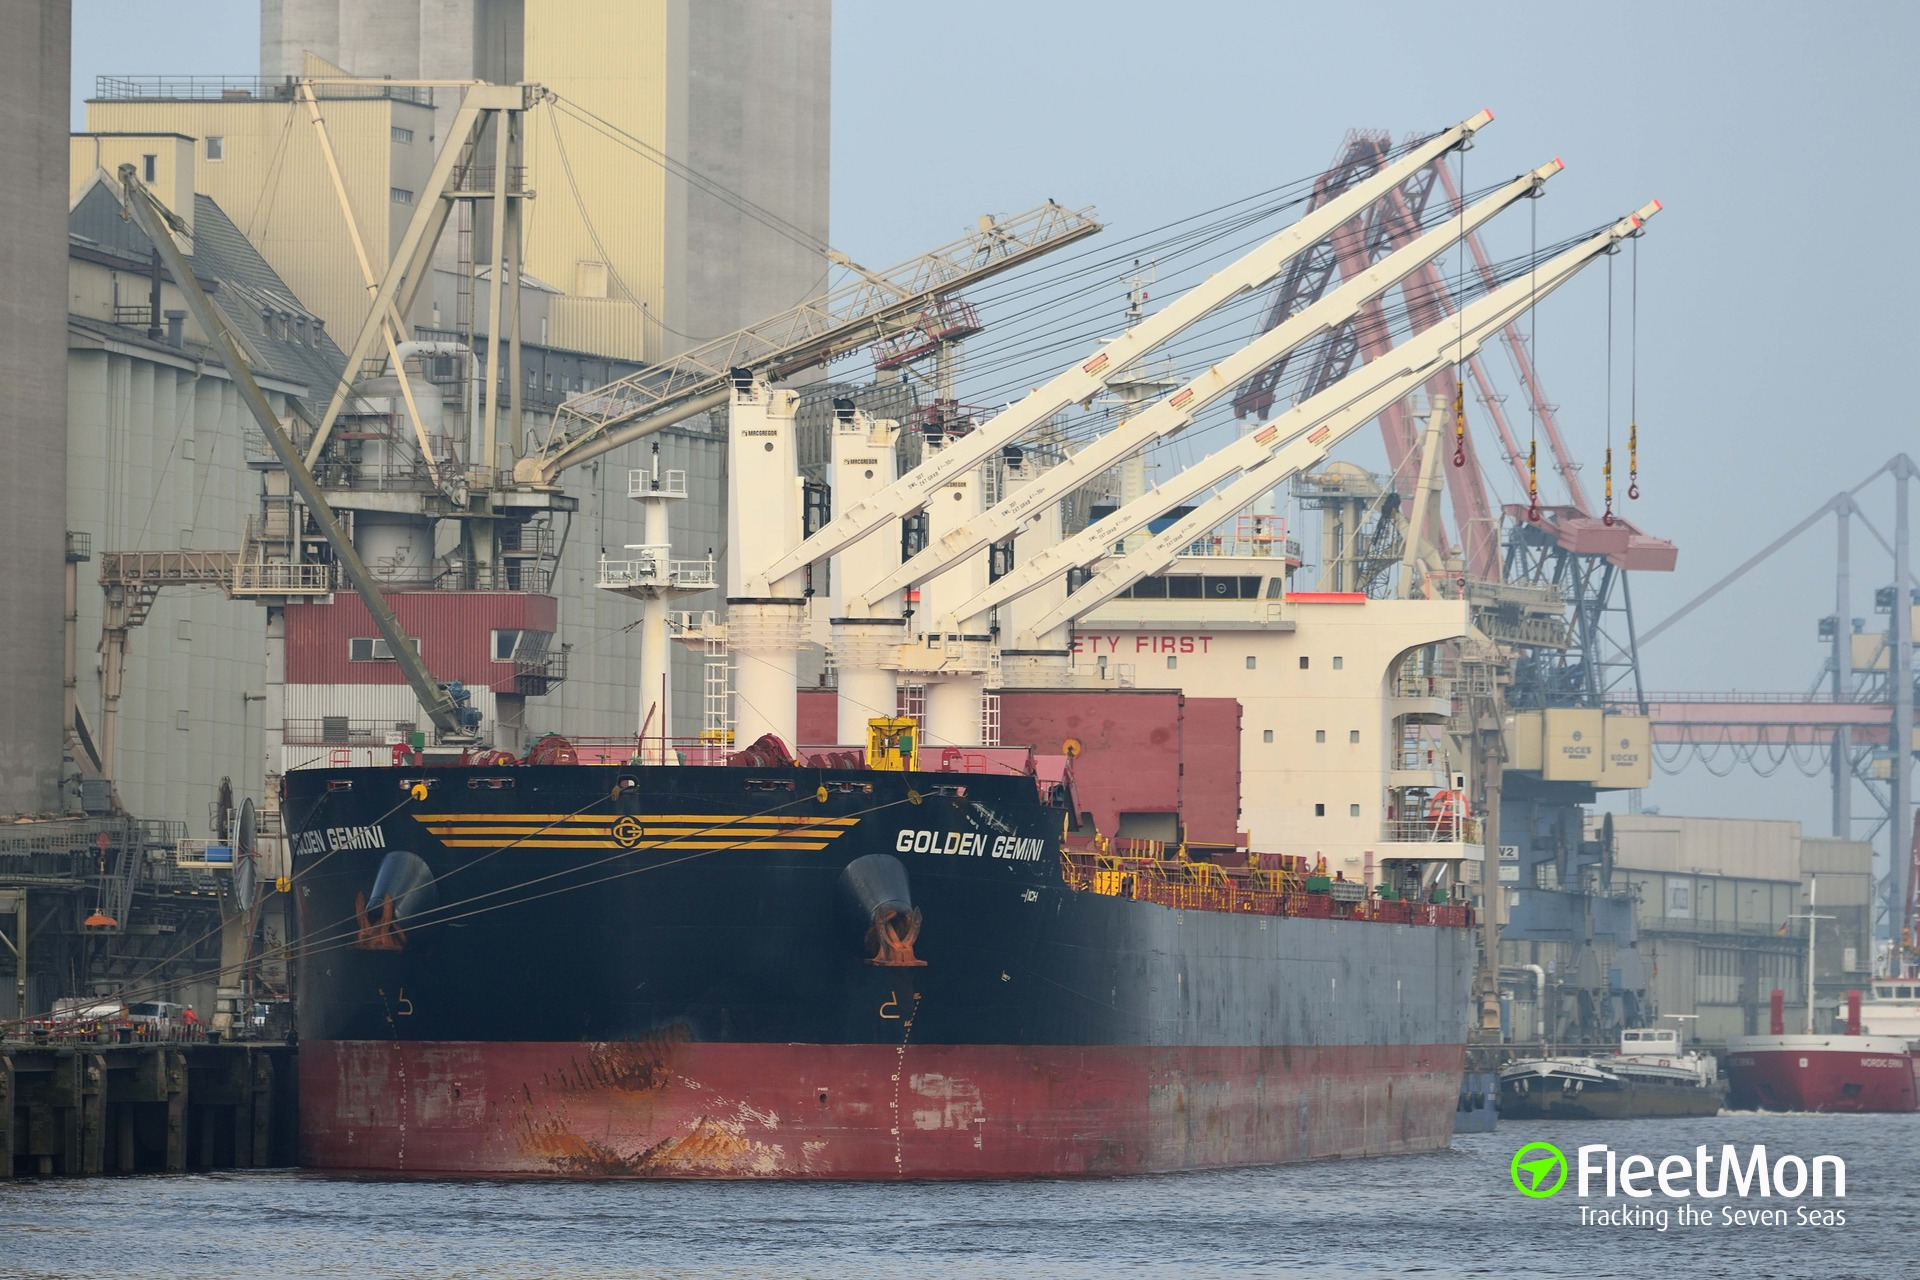 GOLDEN GEMINI detained for loading illegal nickel ore, Philippines